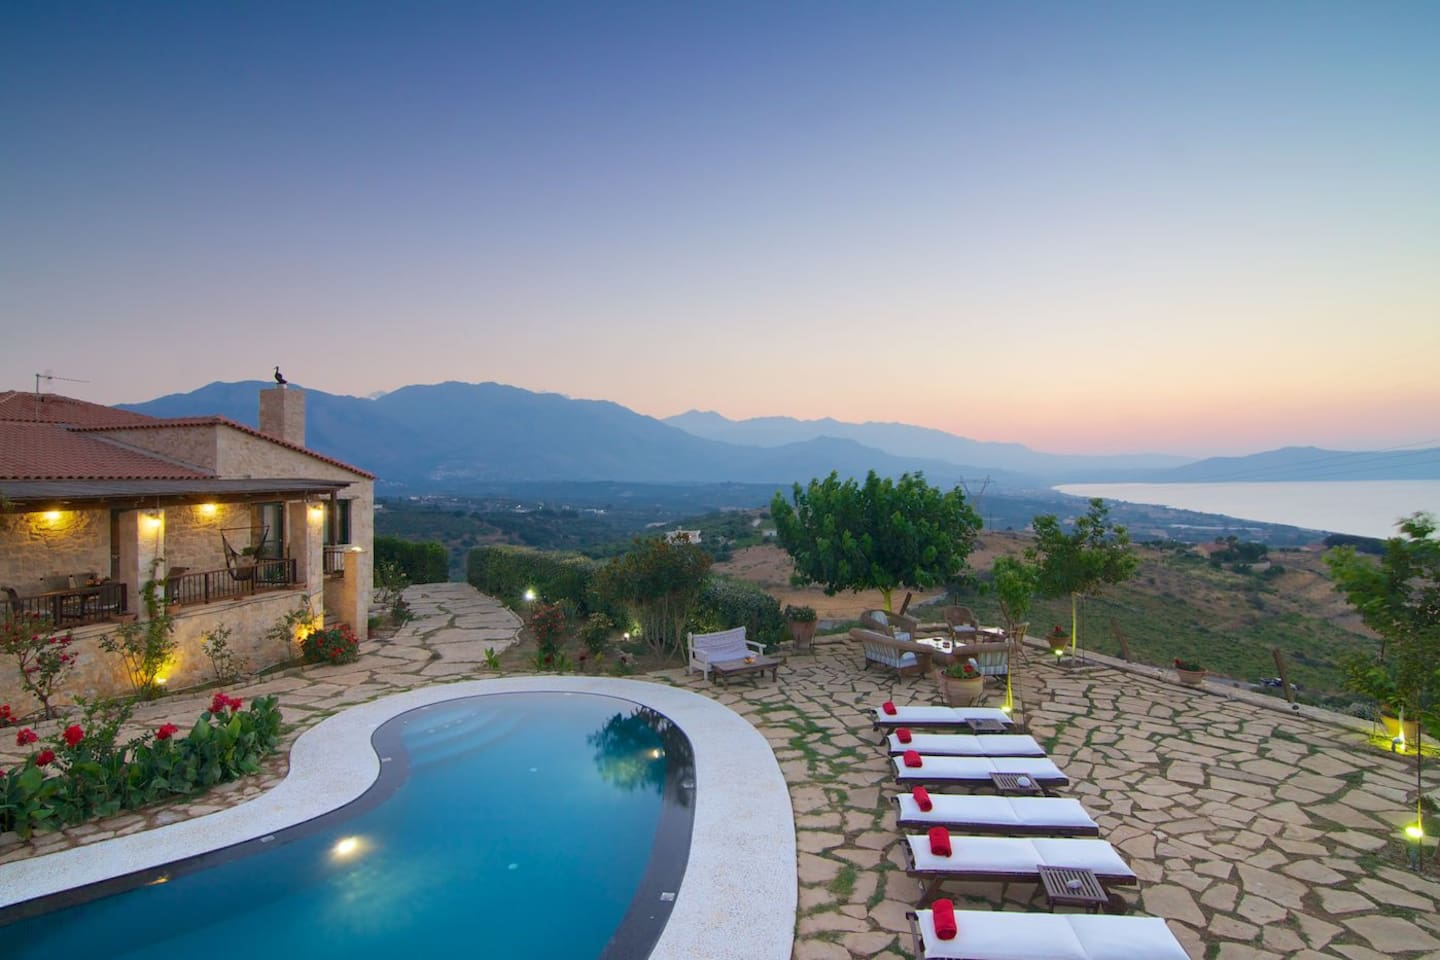 The private terrace and pool are just amazing!